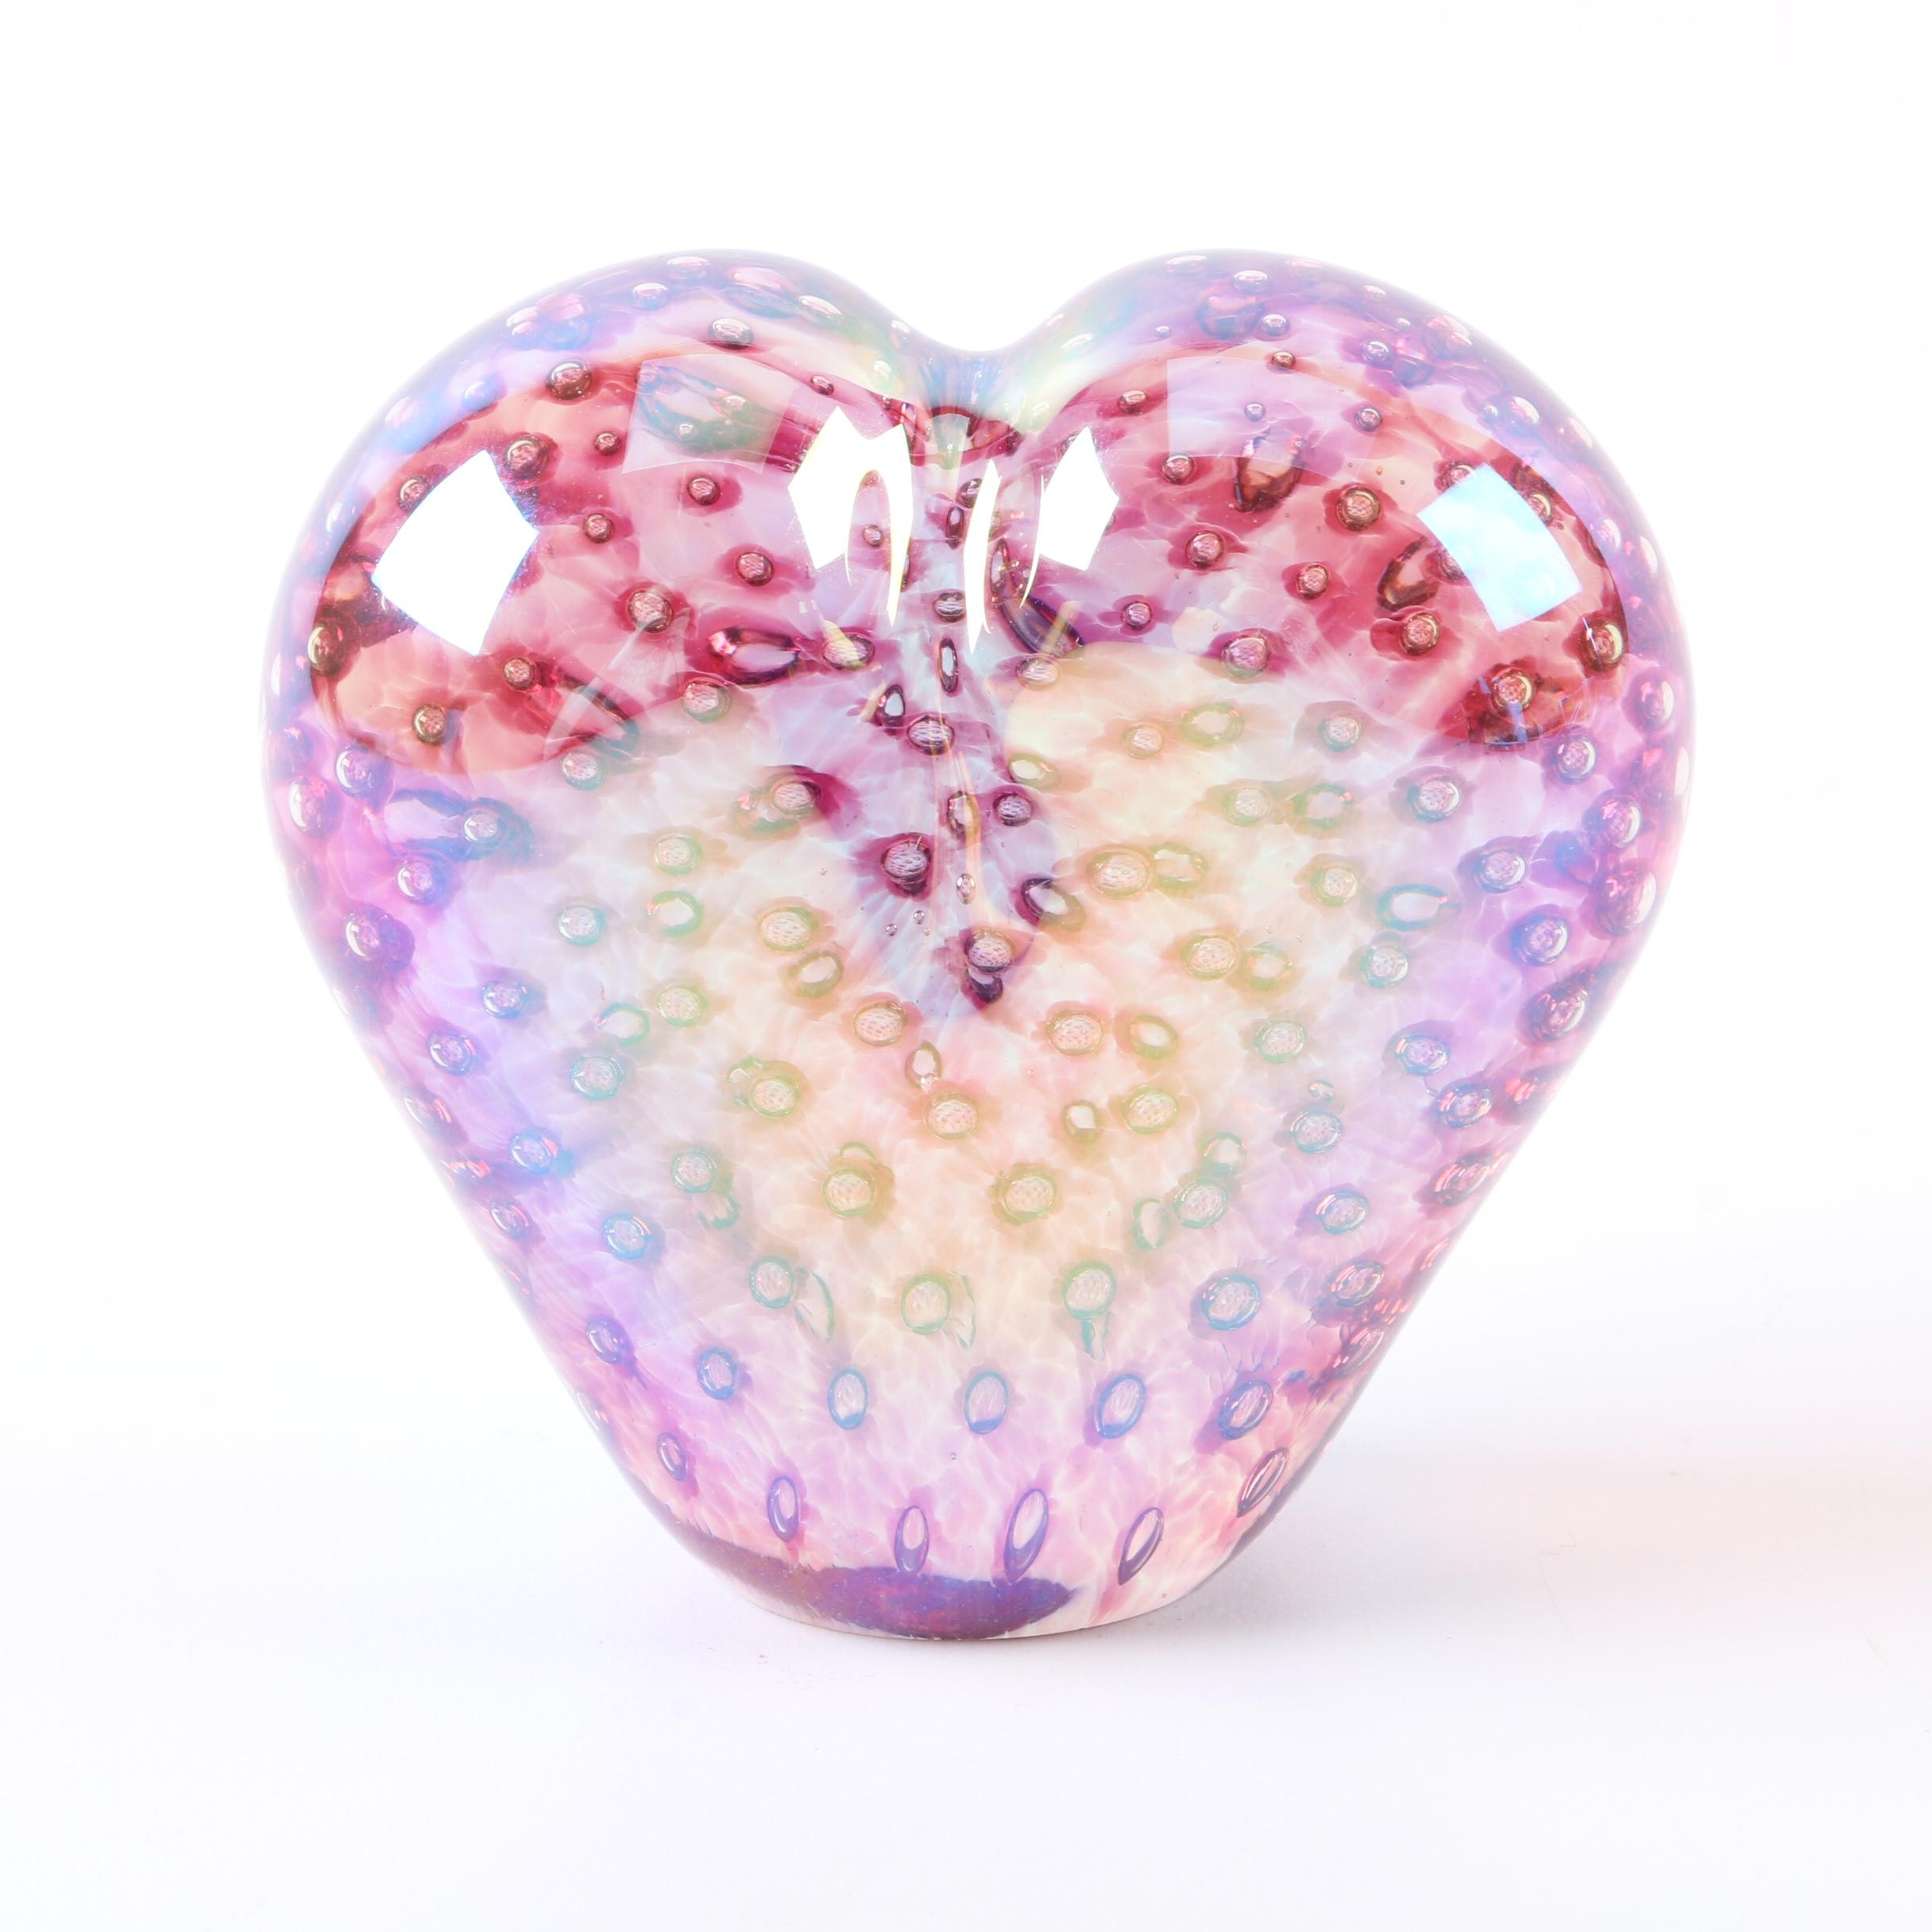 Vintage Glass Eye Studio Heart Paperweight